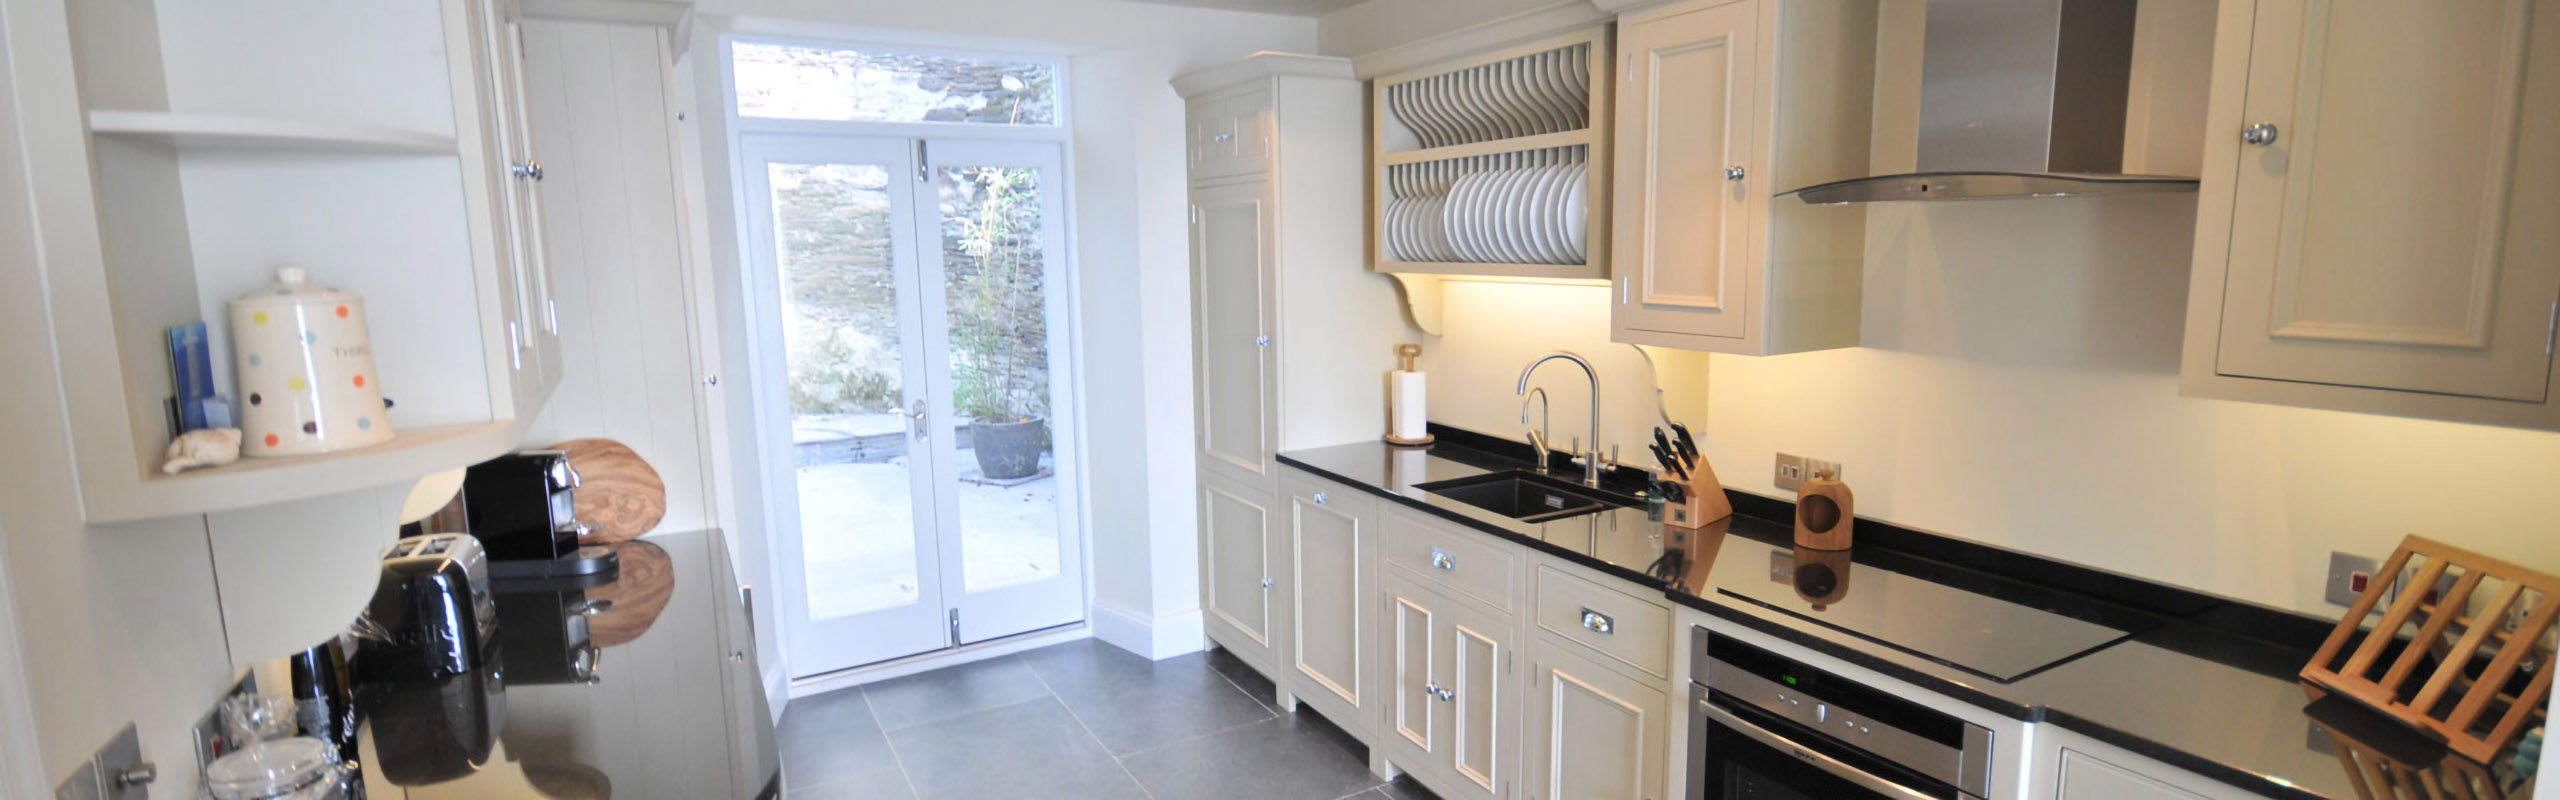 Fitted Kitchen work carried out by Dyfi Renovation Ltd